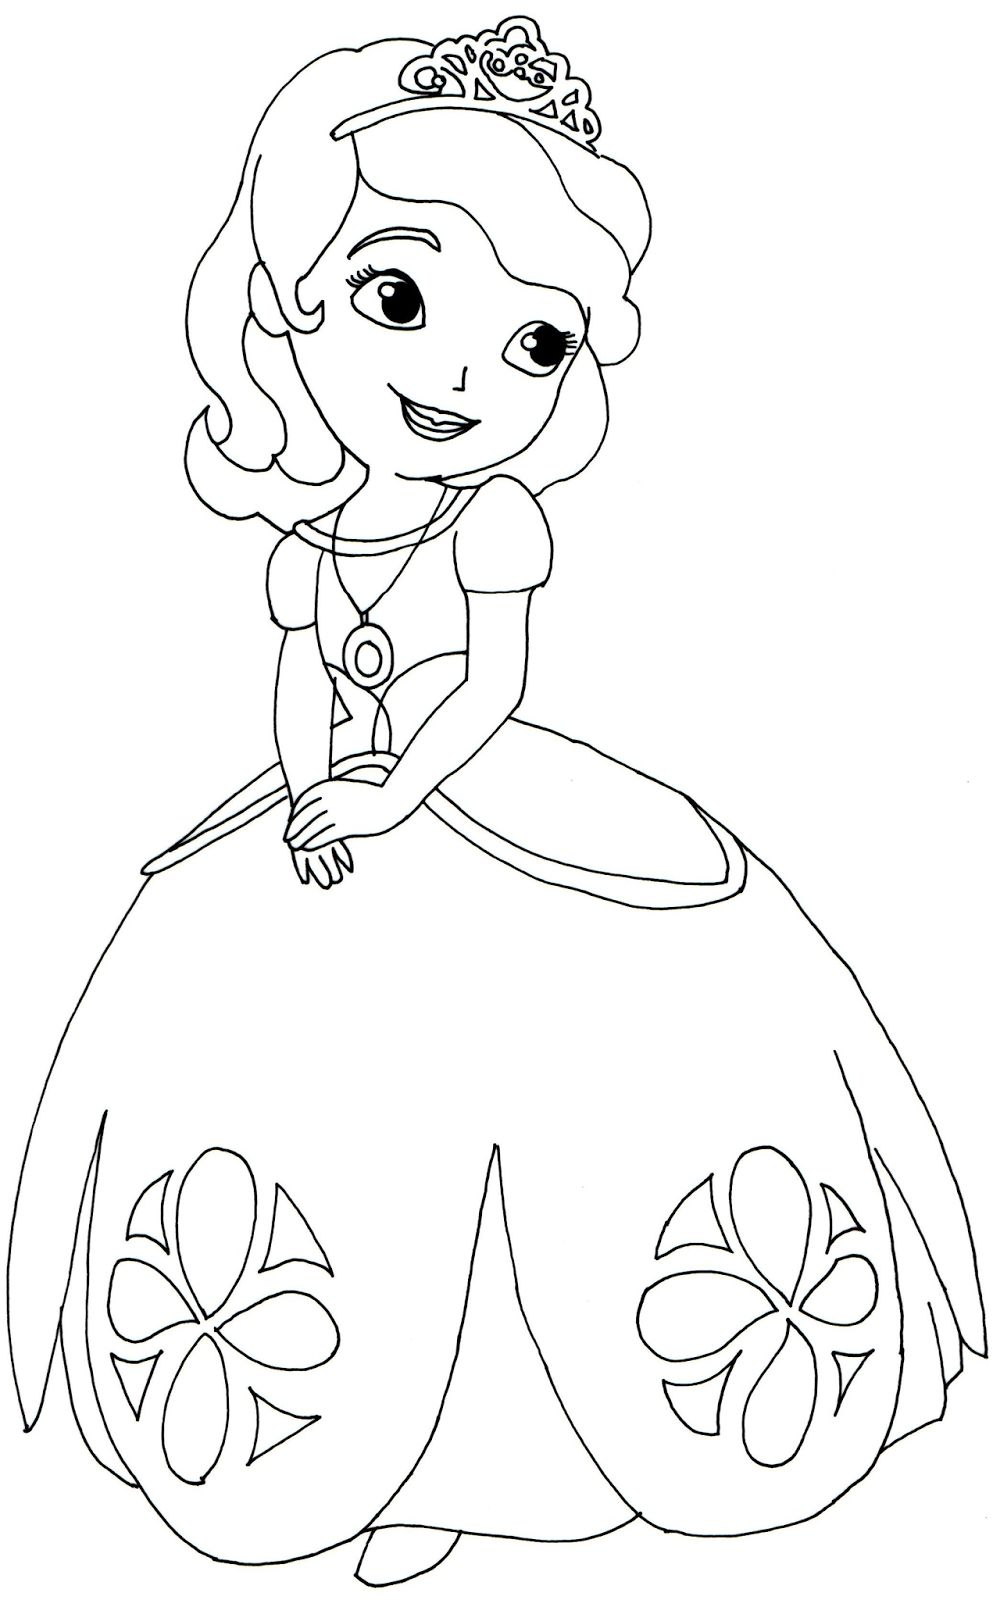 Sofia The First Coloring Pages For 2019 Http Www Wallpaperartdesignhd Us Sofia Disney Coloring Pages Printables Disney Coloring Pages Princess Coloring Pages